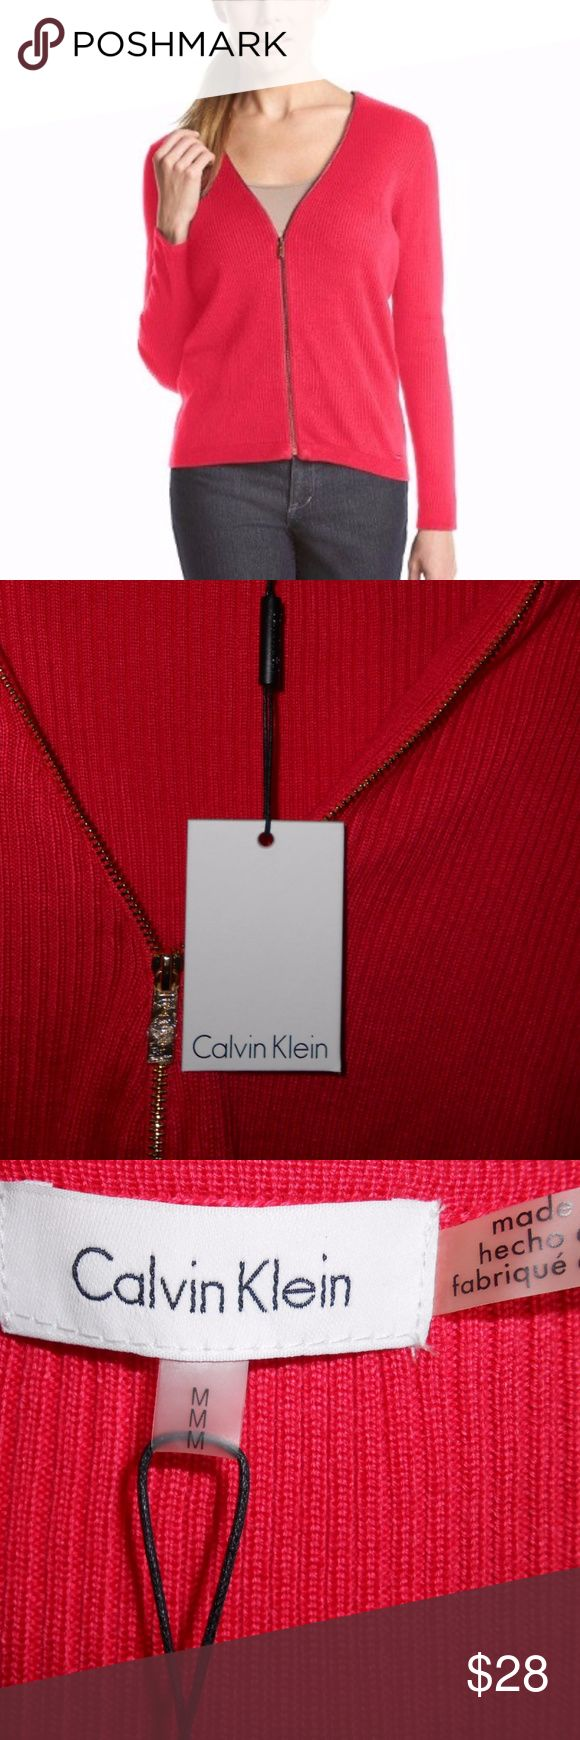 Calvin Klein Zip Front Cardigan Acrylic V-neck Long sleeves Zip front closure Allover front ribbing detail on bodice watermelon color Calvin Klein Jackets & Coats